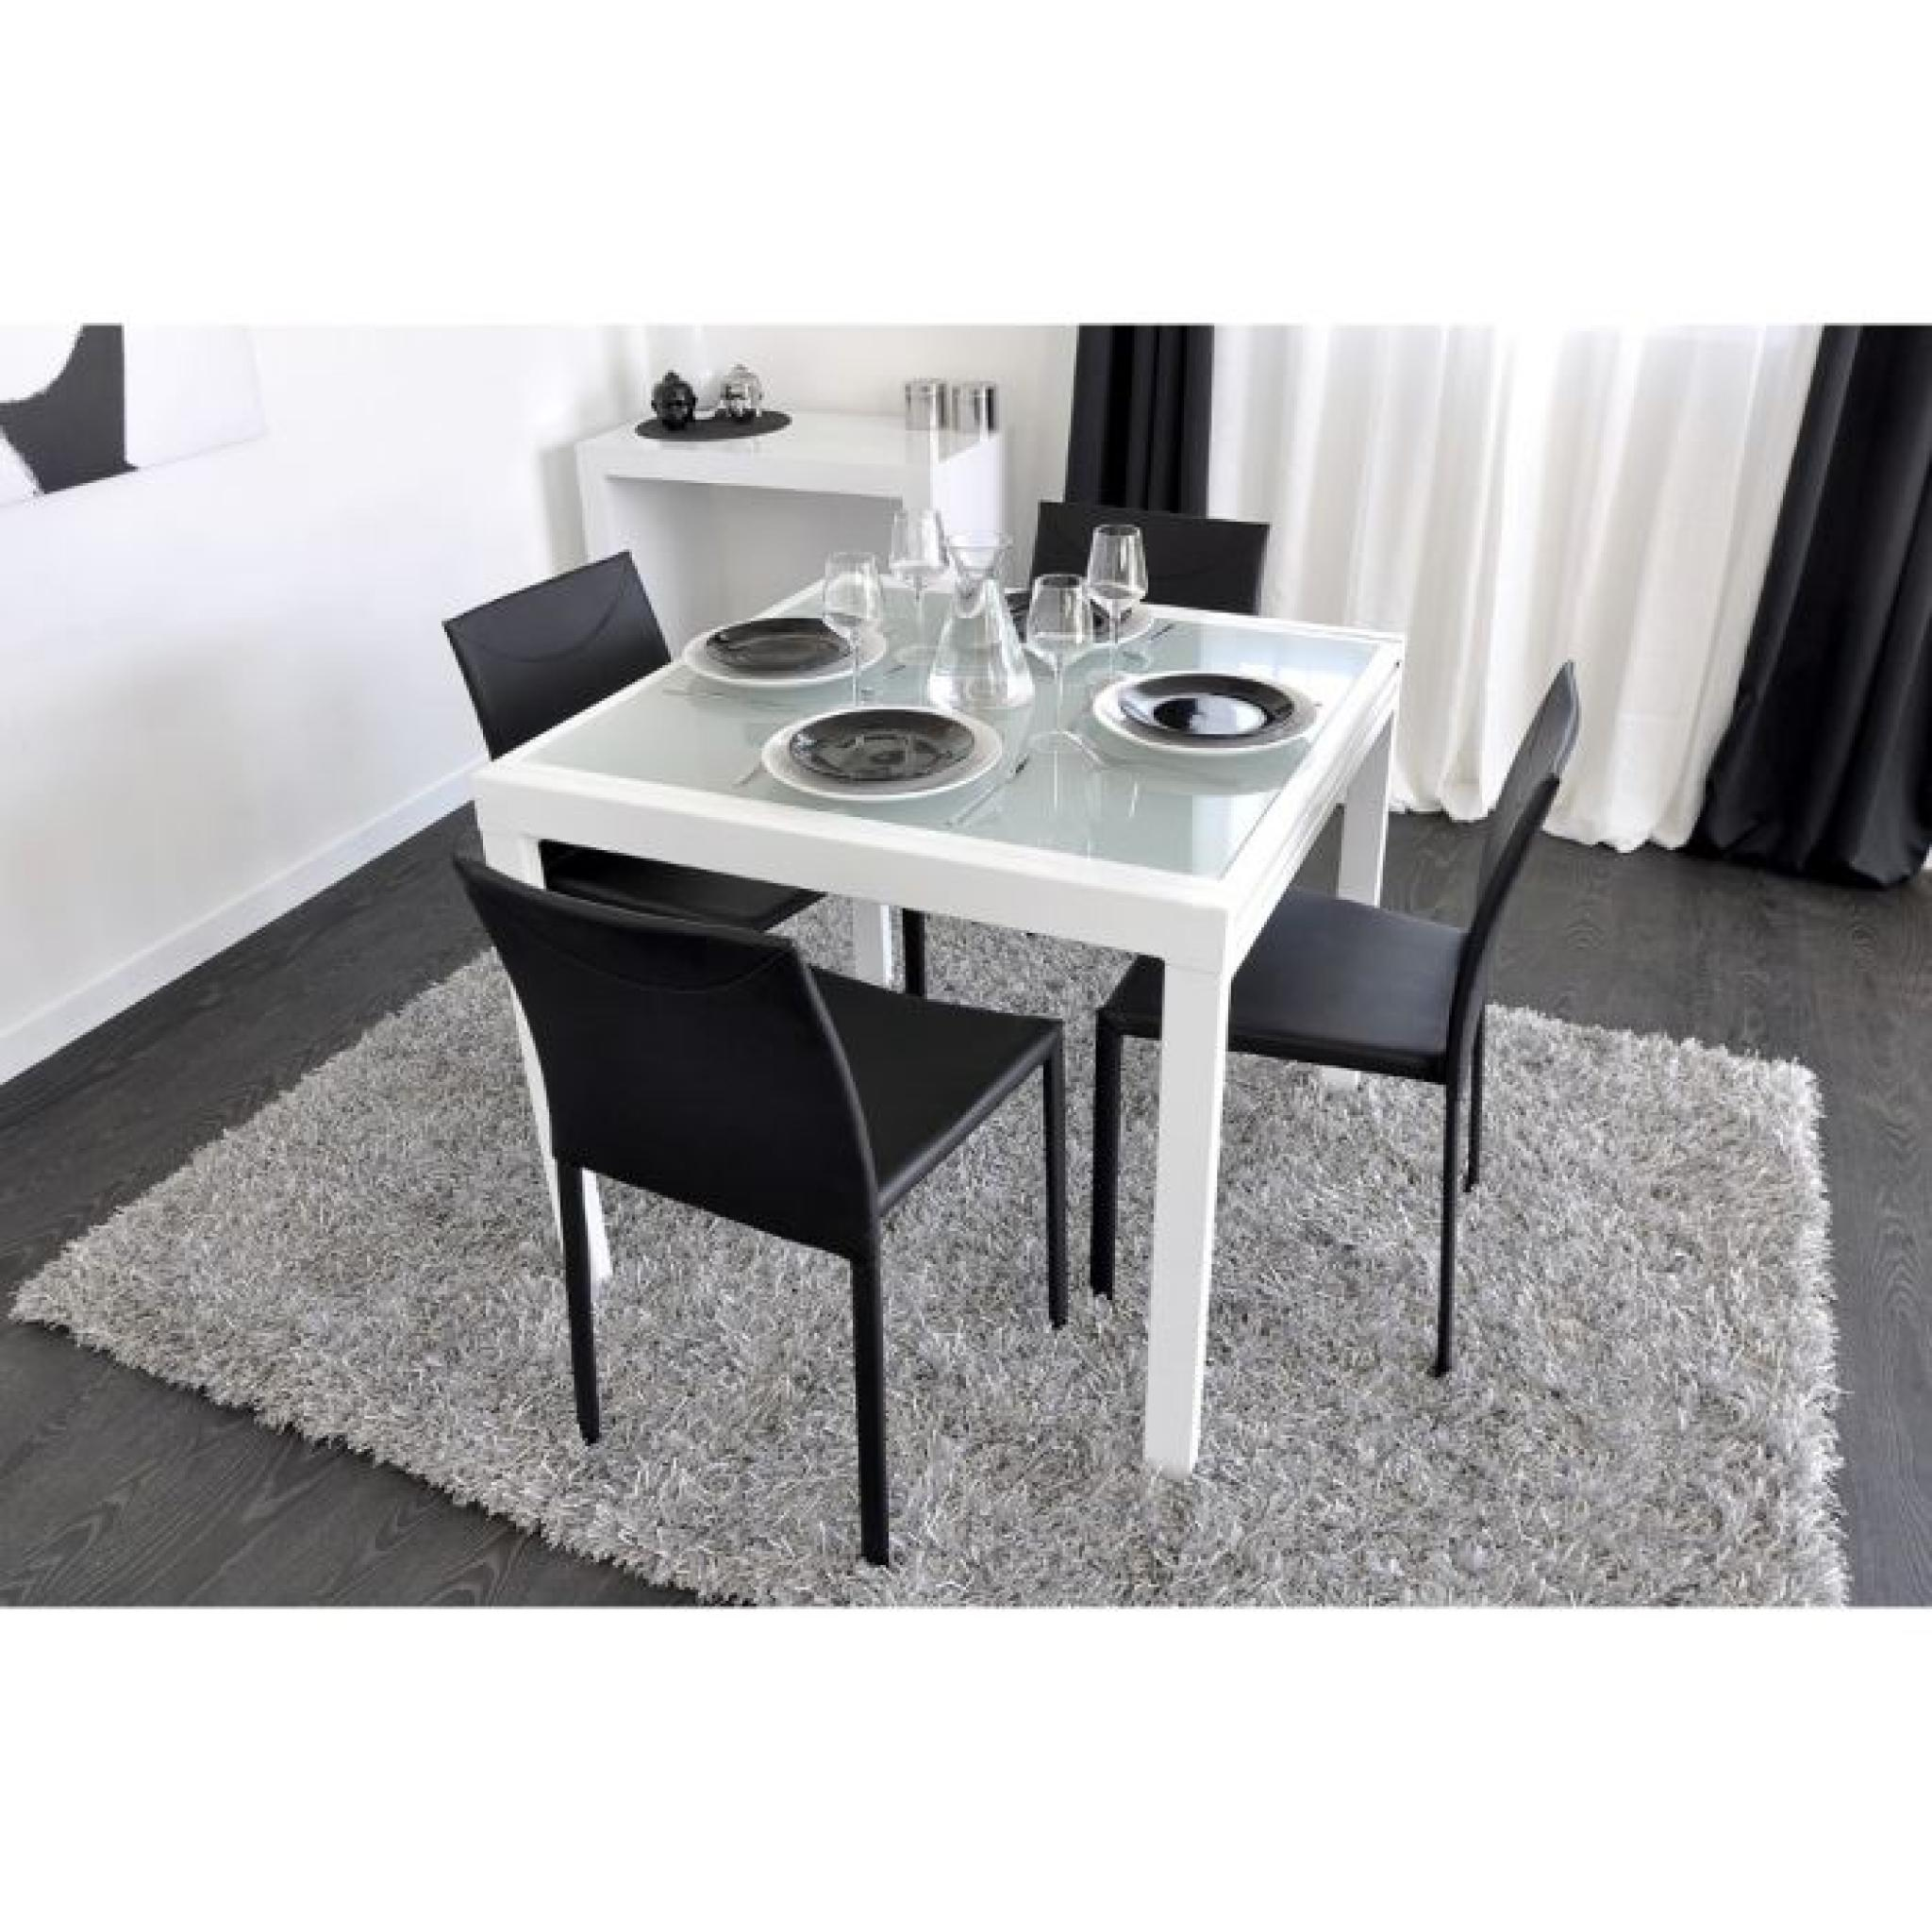 Table salle a manger carree blanche maison design for Table salle a manger carree extensible